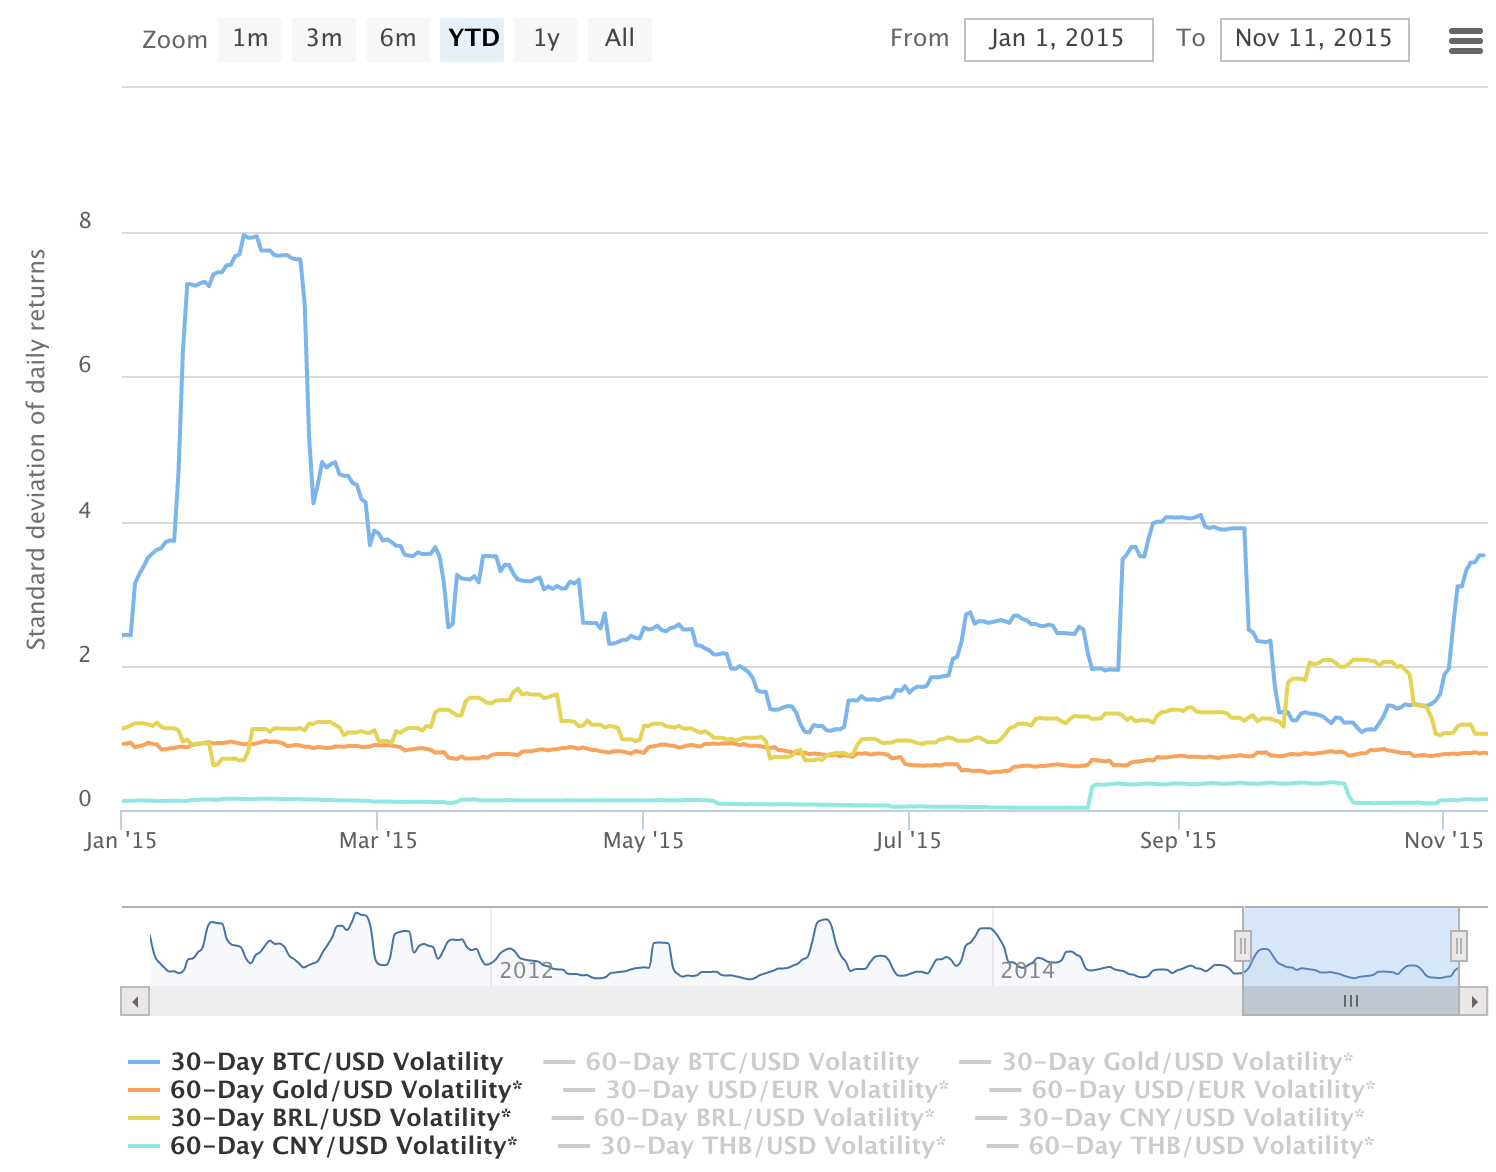 Bitcoin's volatility compared to the volatility of gold, the Brazilian Real, and Chinese Yuan.